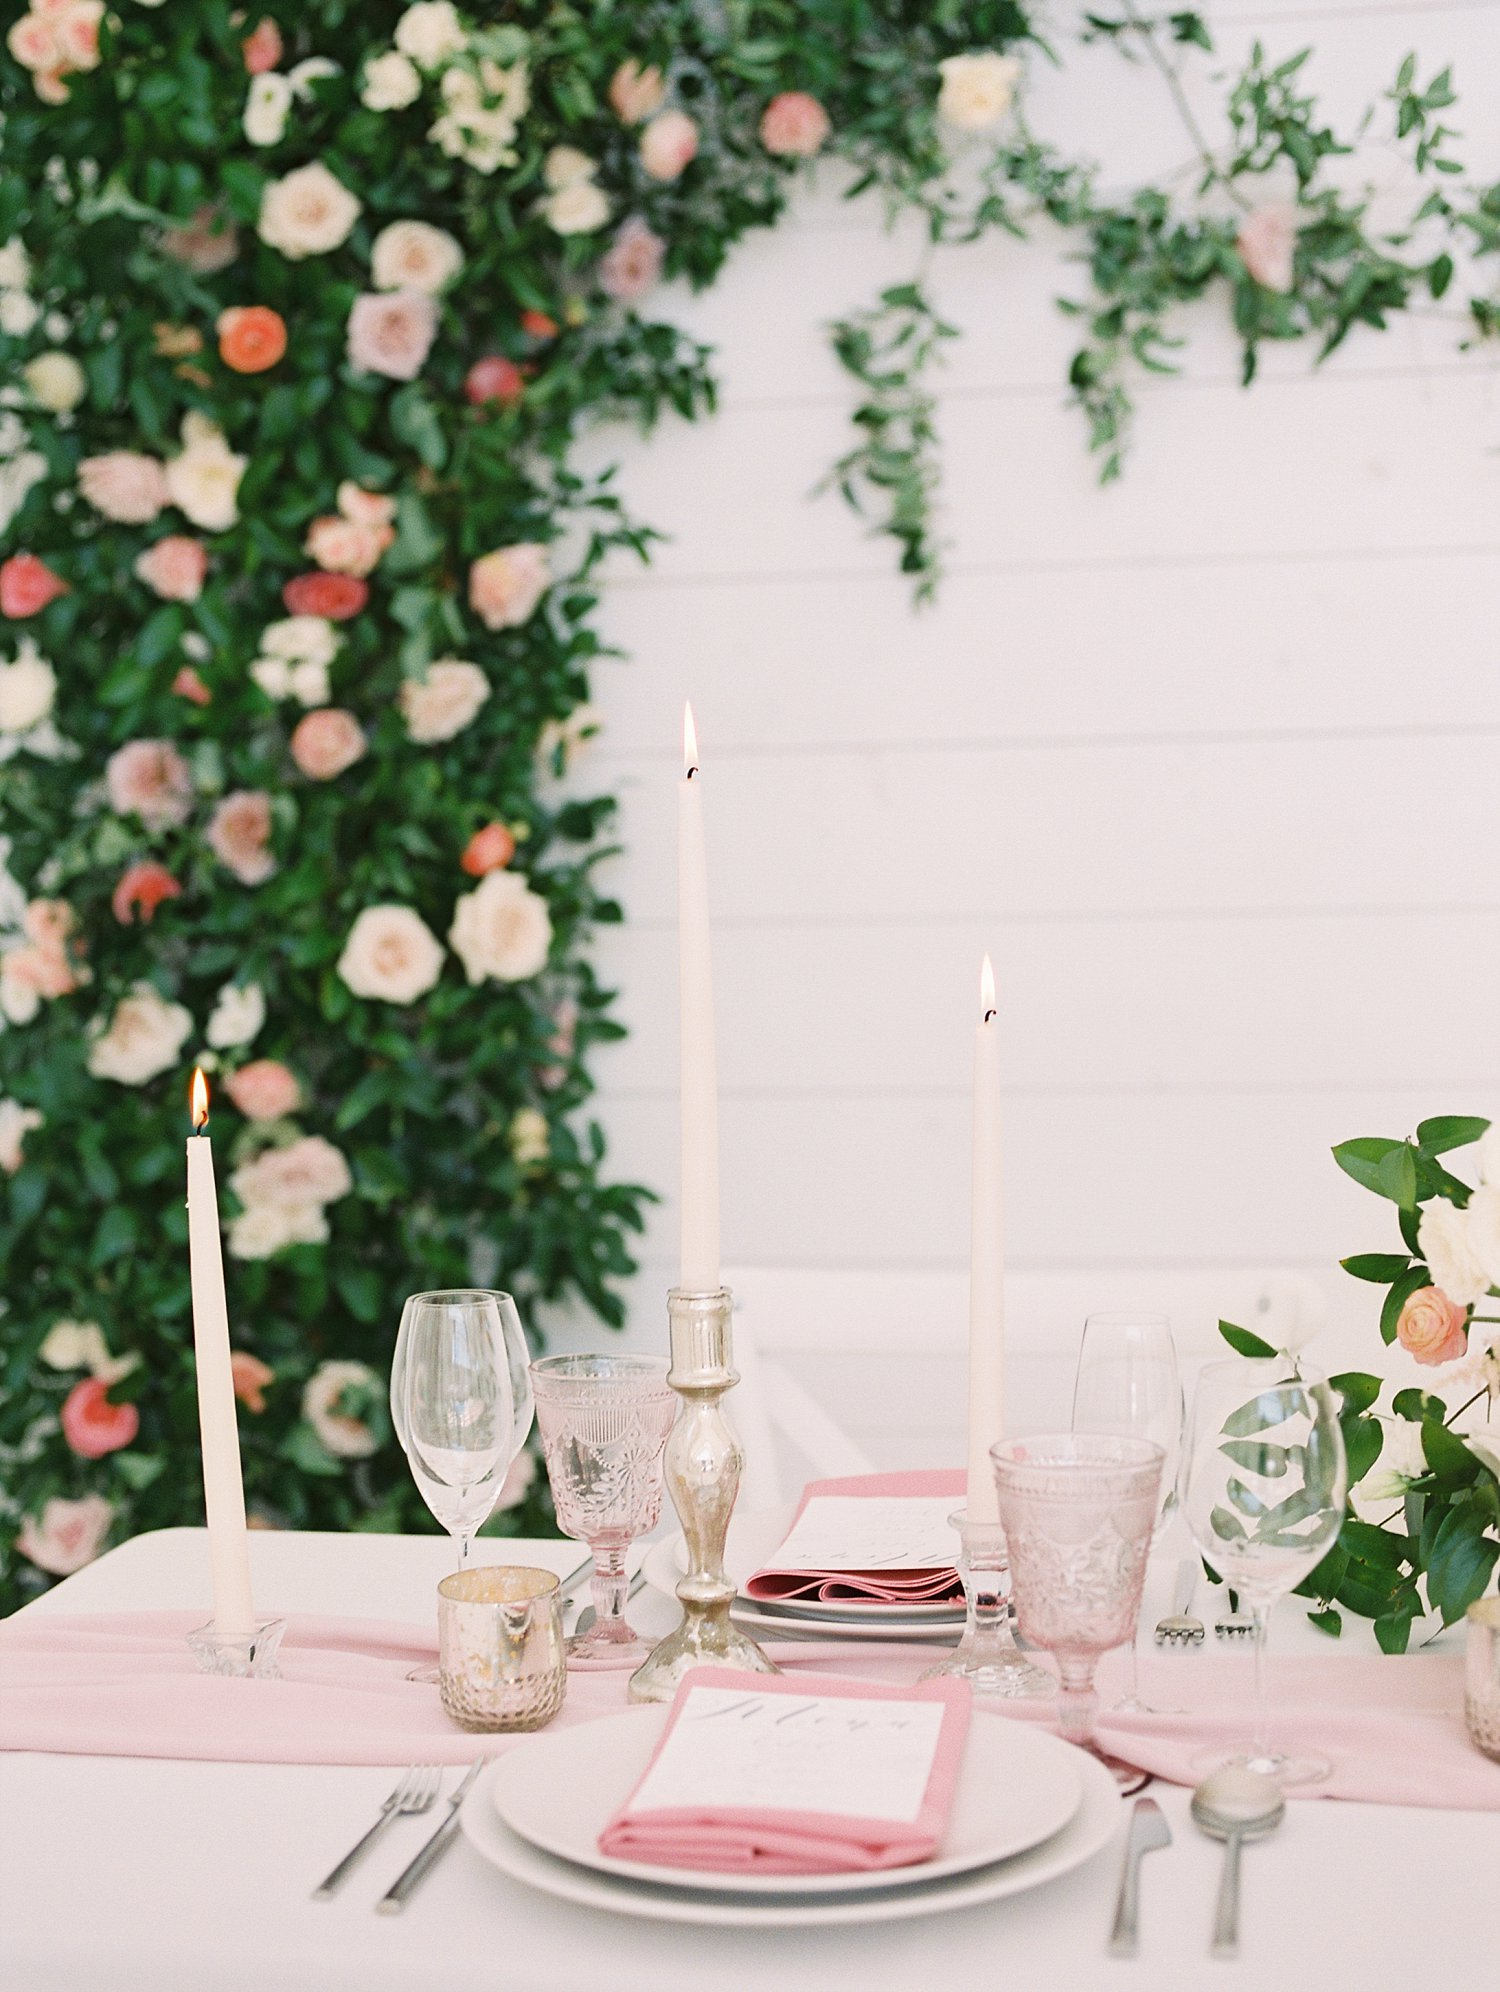 greenery and rose backdrop with a elegant tablescape